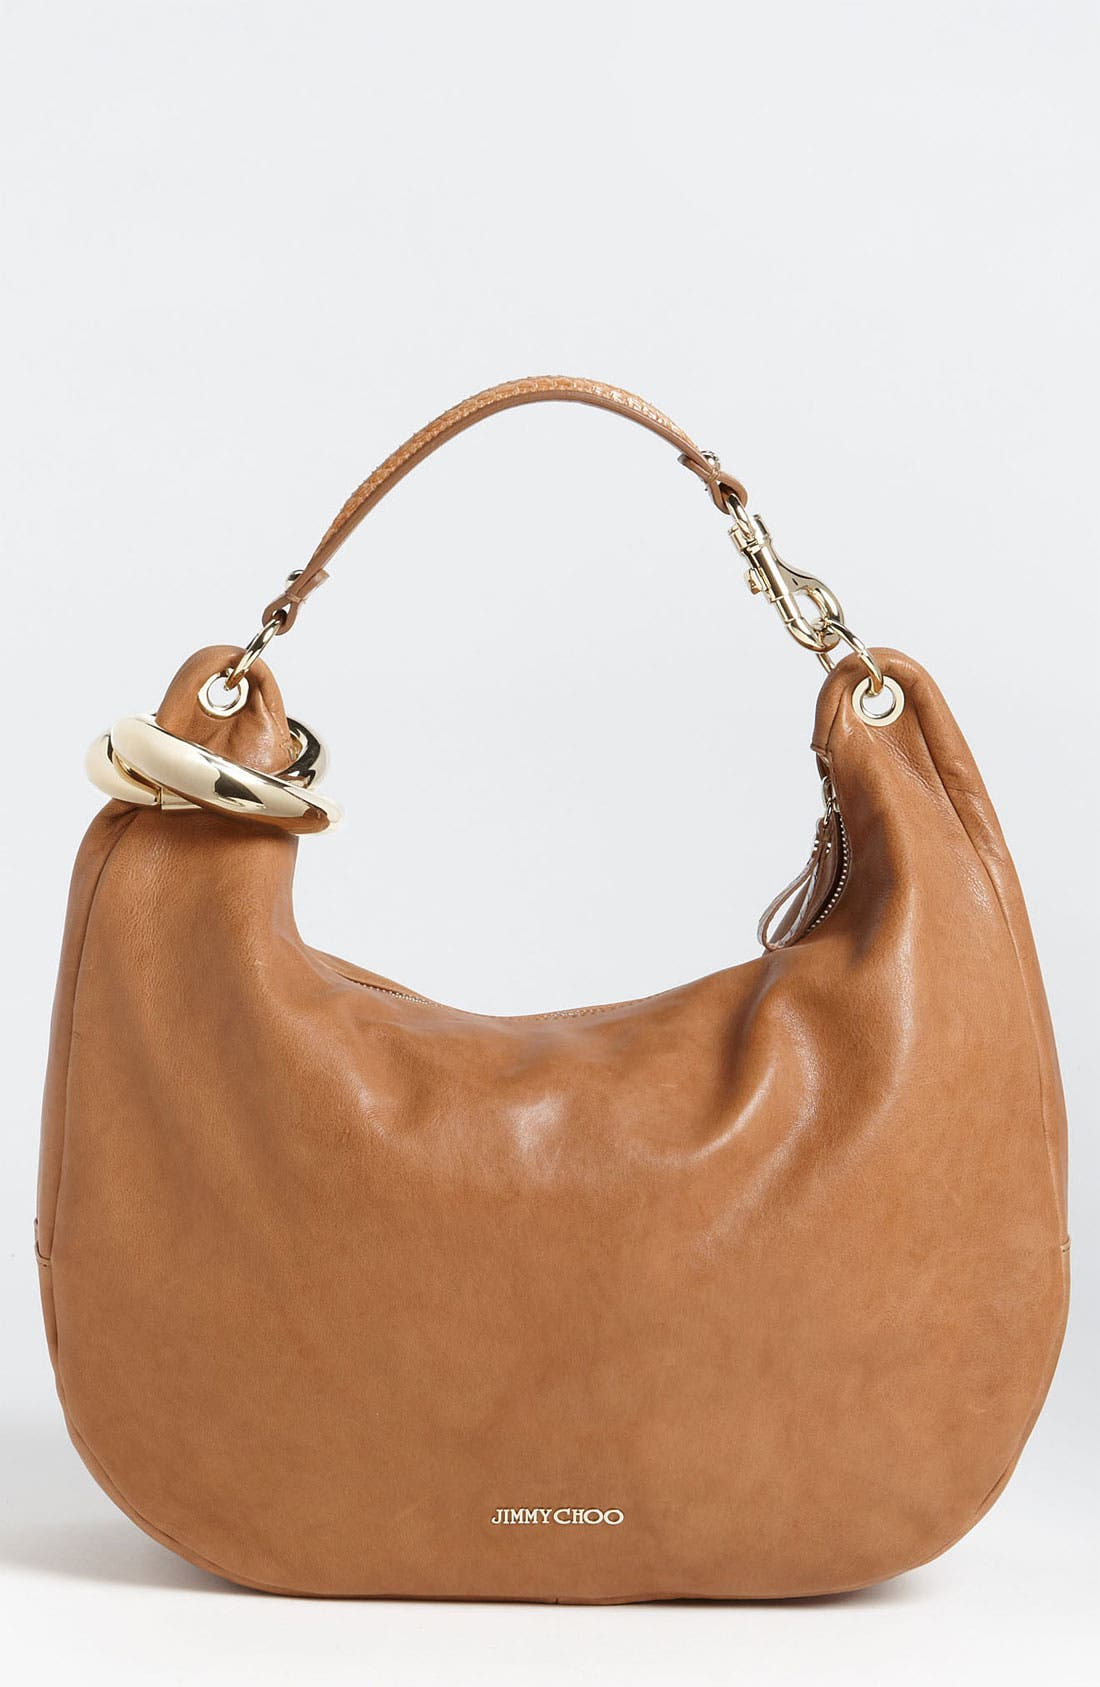 Main Image - Jimmy Choo 'Large Solar Calf' Leather Hobo